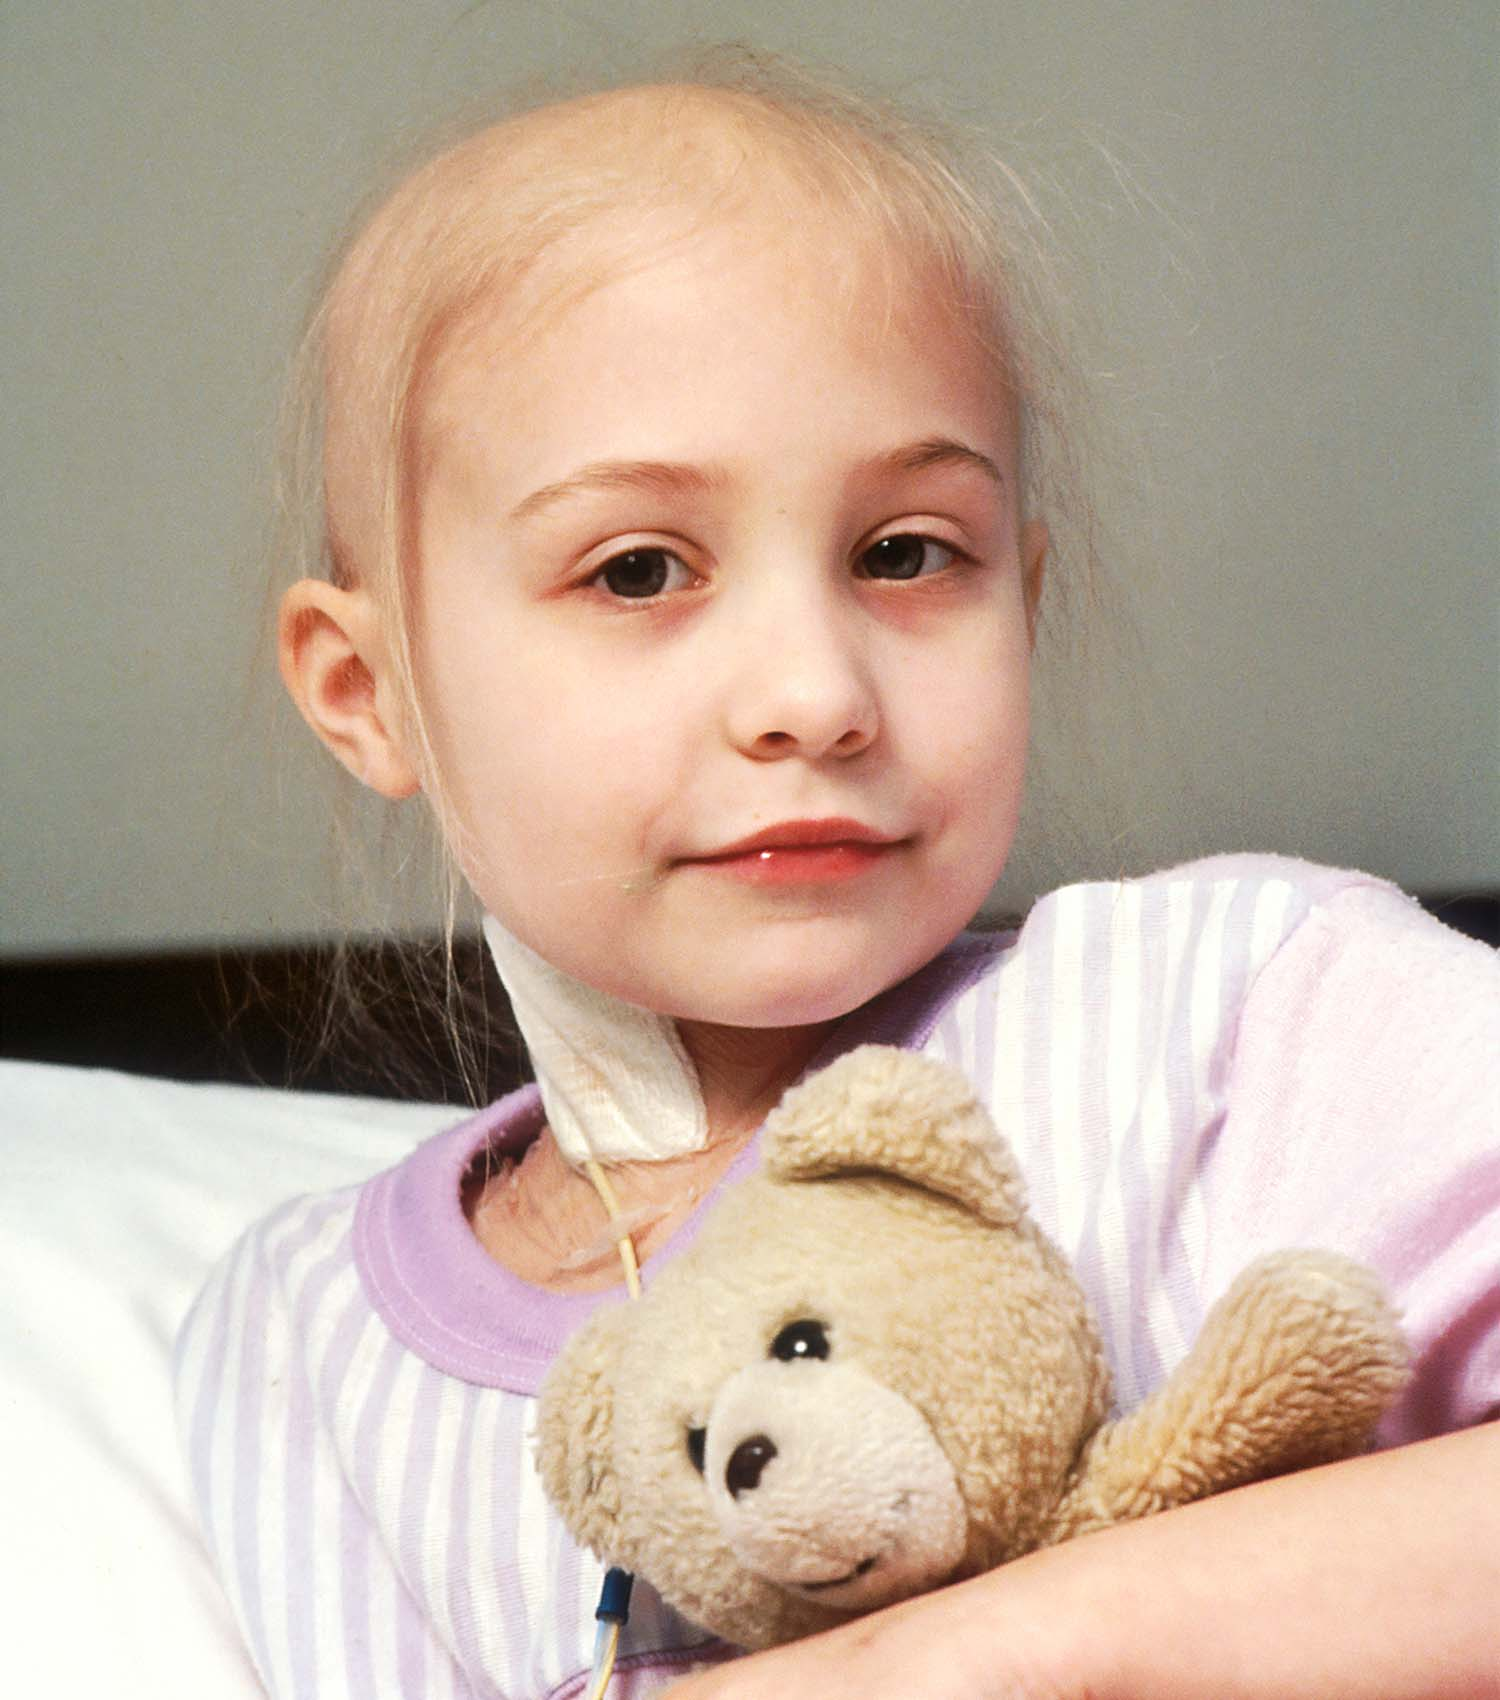 Sick young girl with cancer holding teddy bear receiving chemotherapy in hospital